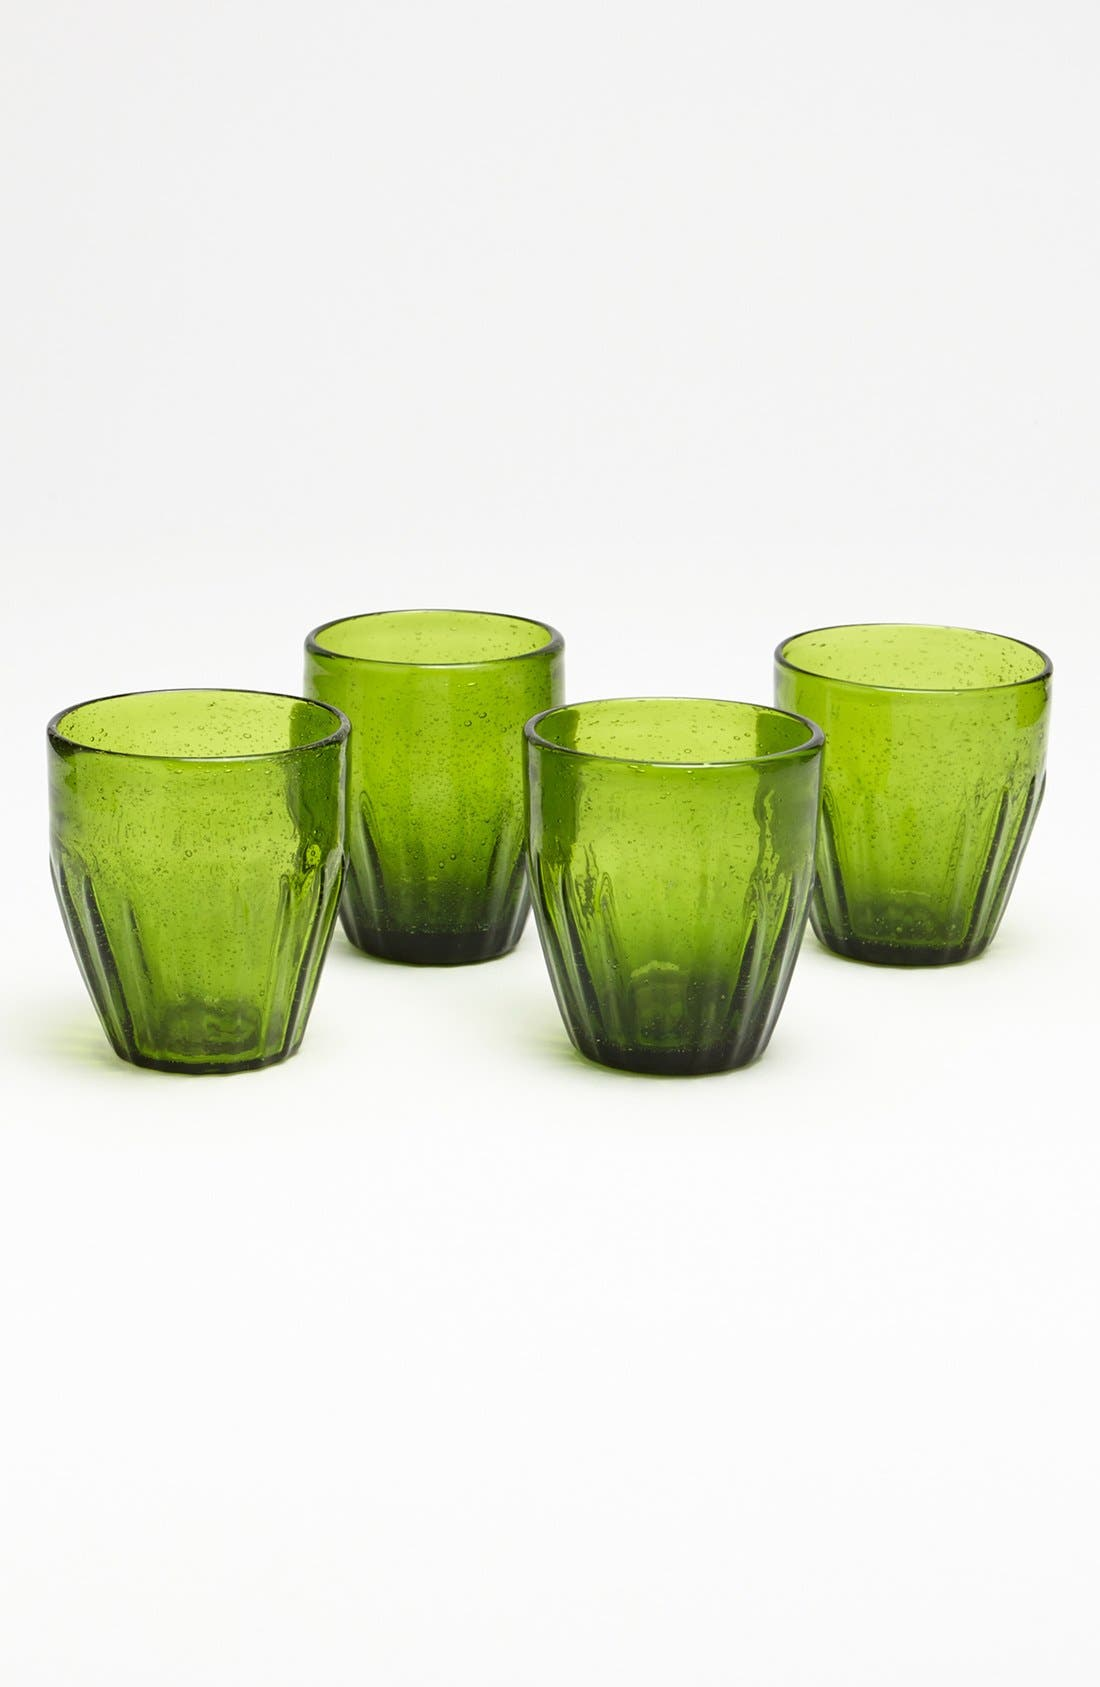 Alternate Image 1 Selected - Rustic Green Glass Tumblers (Set of 4)